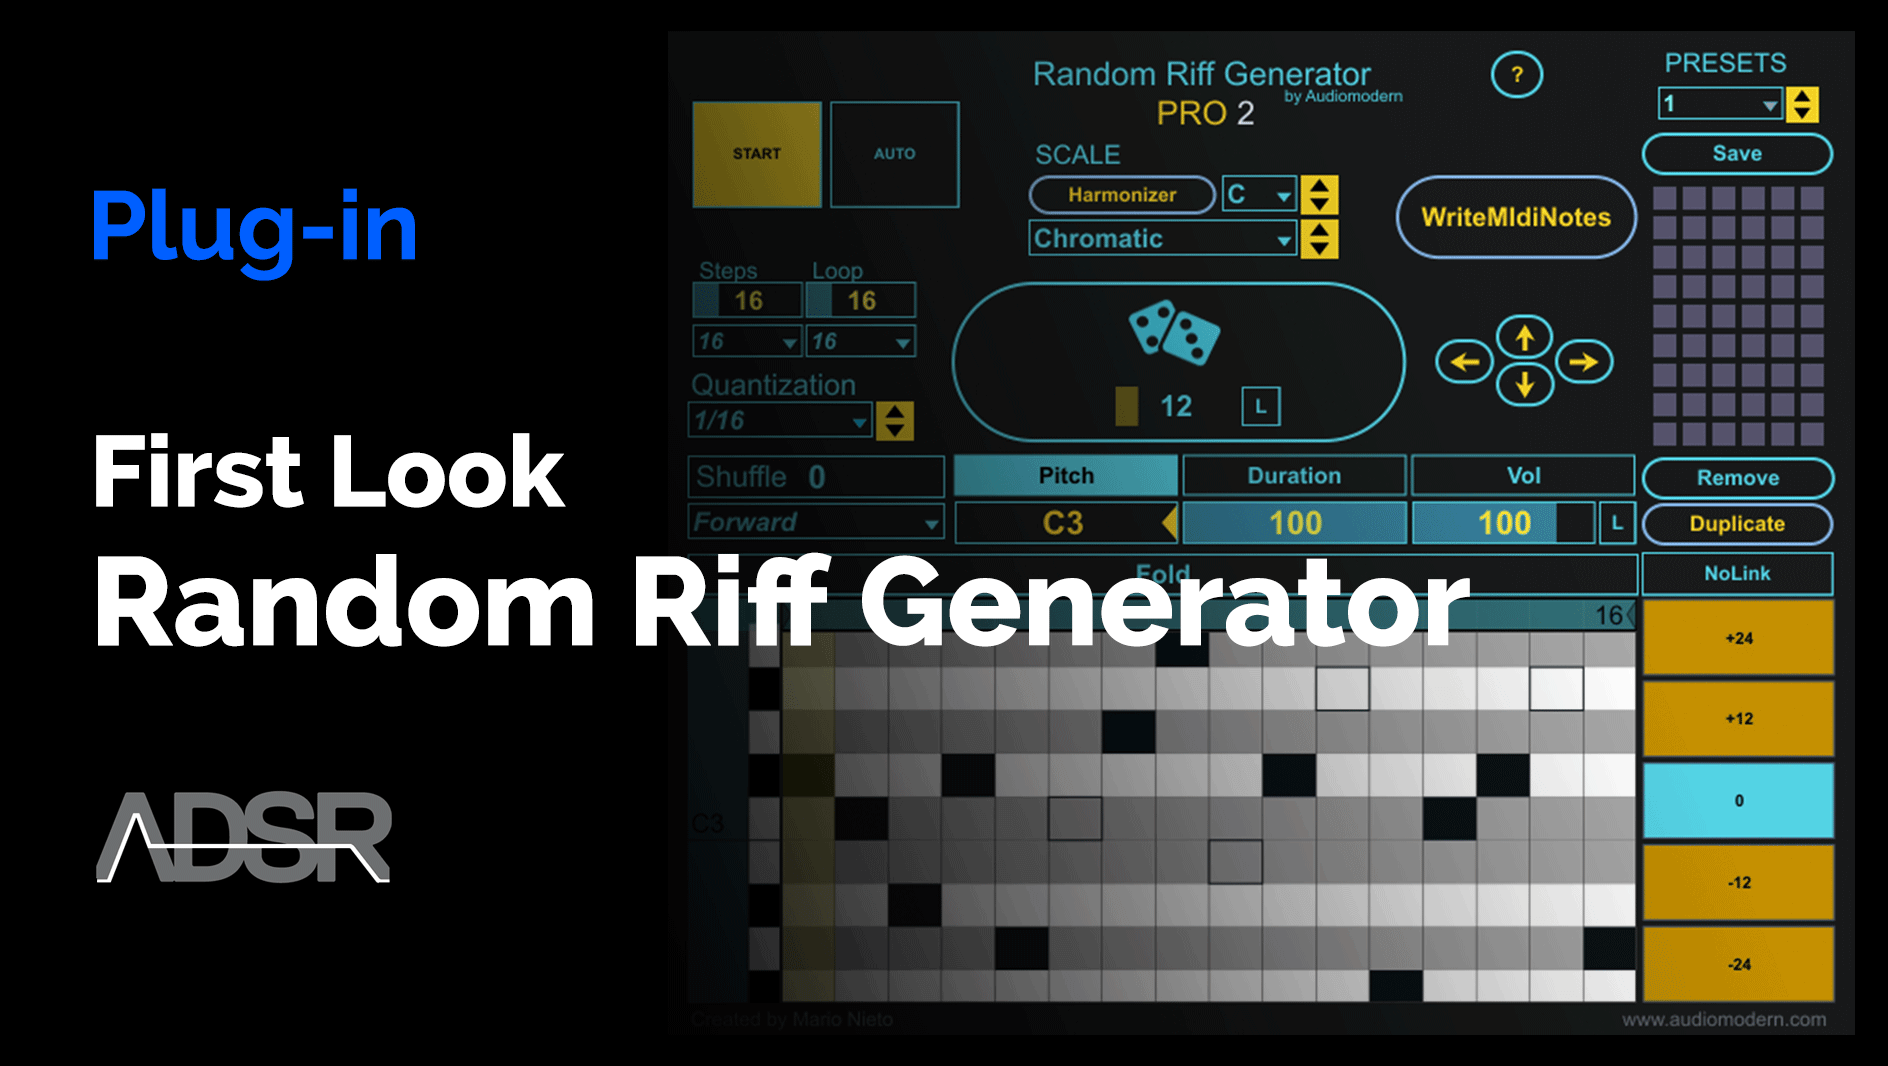 Video related to Random Riff Generator Pro 2